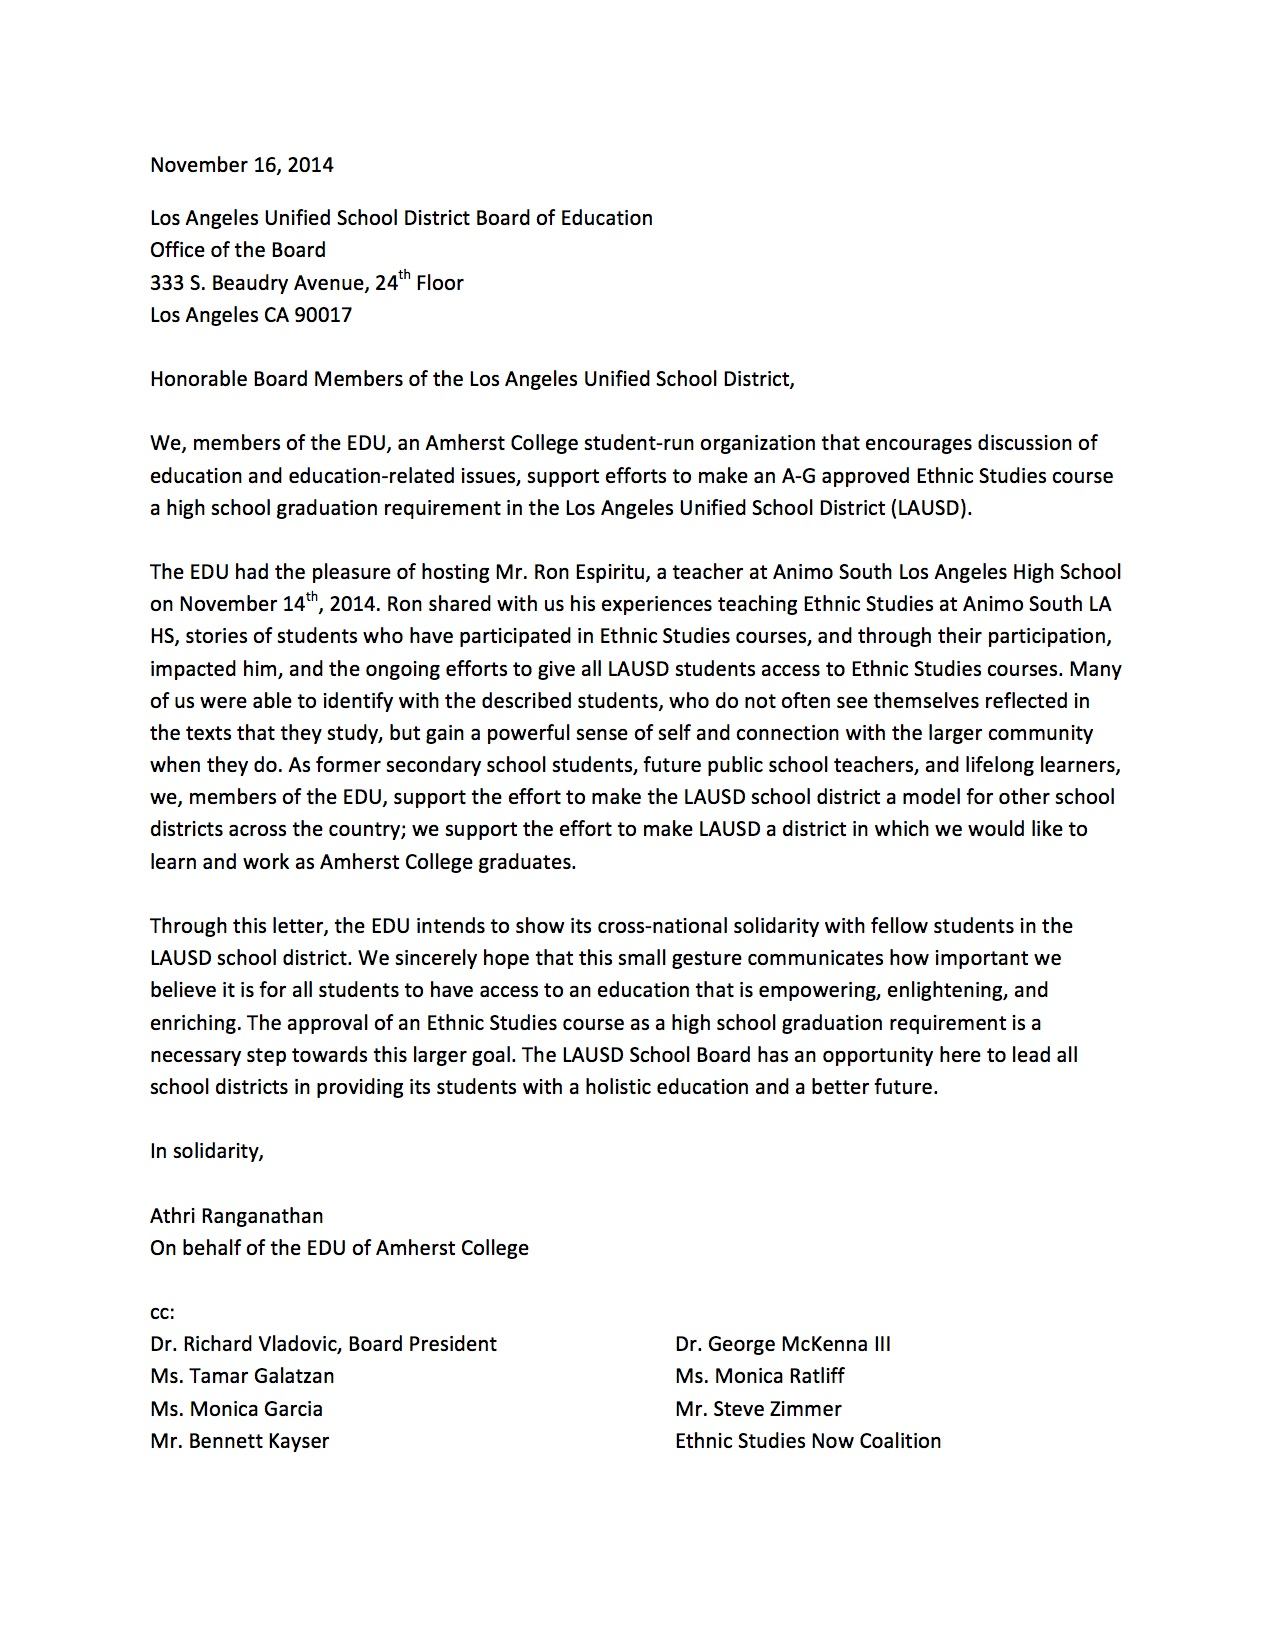 Letter_to_LAUSD_from_Amherst_EDU_student_org.jpg